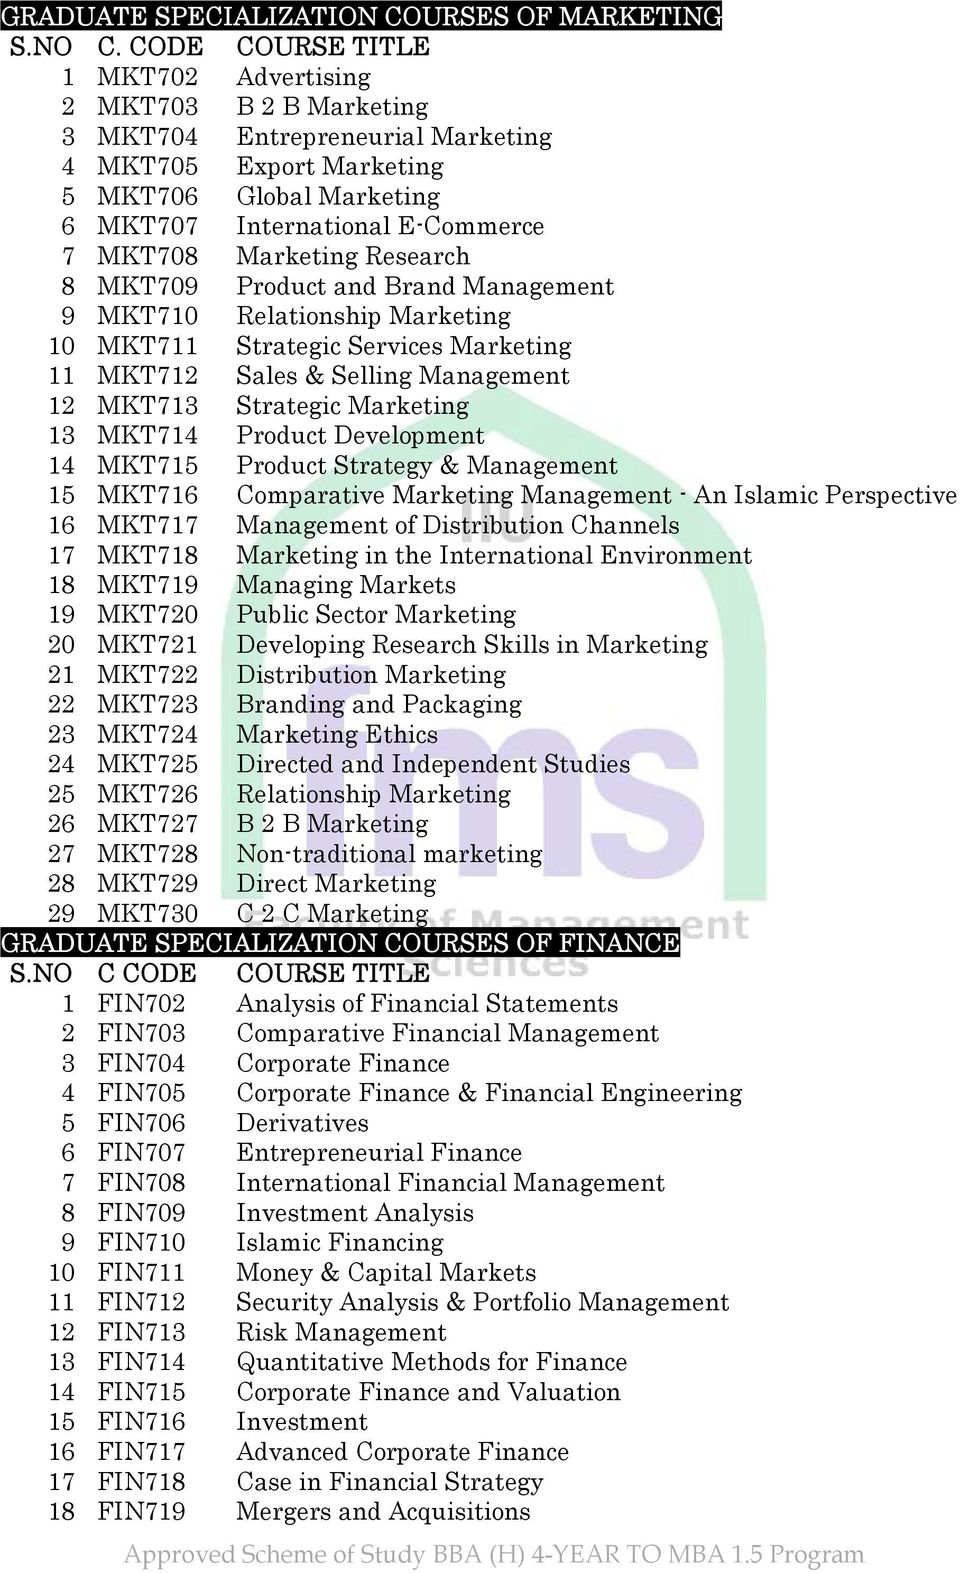 12 MKT713 Strategic Marketing 13 MKT714 Product Development 14 MKT715 Product Strategy & Management 15 MKT716 Comparative Marketing Management - An Islamic Perspective 16 MKT717 Management of